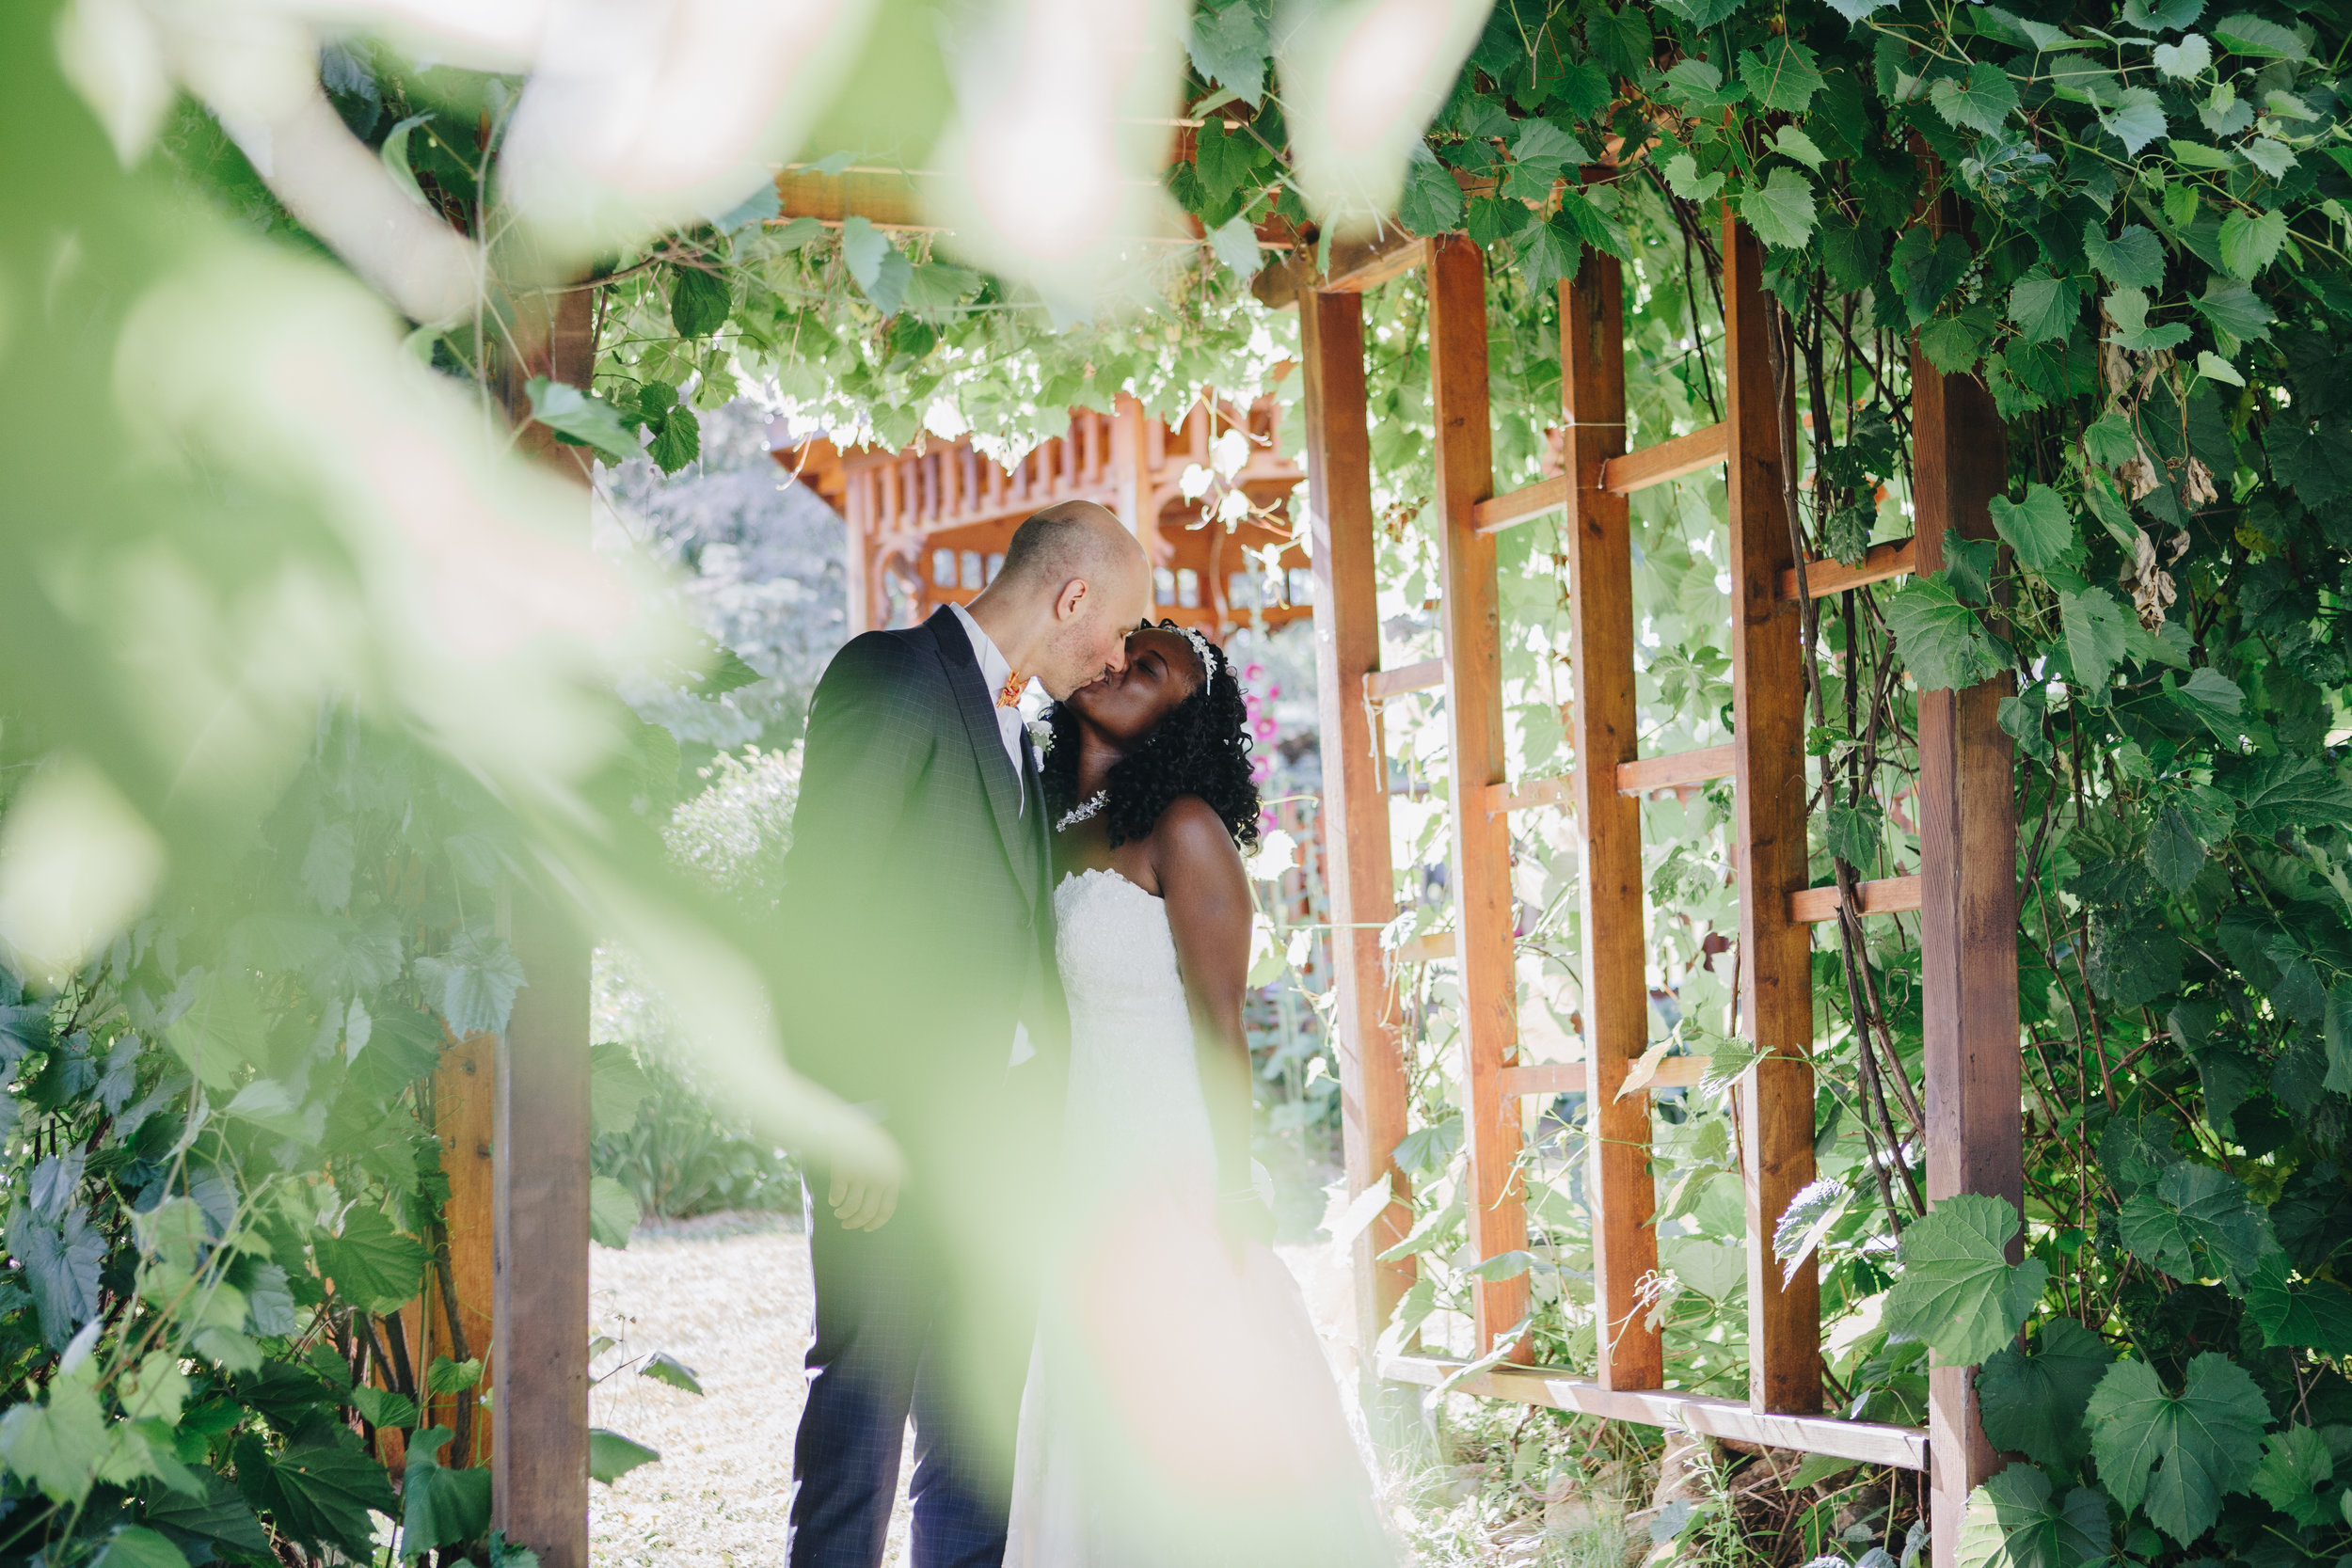 wedding packages - Starting at $2000